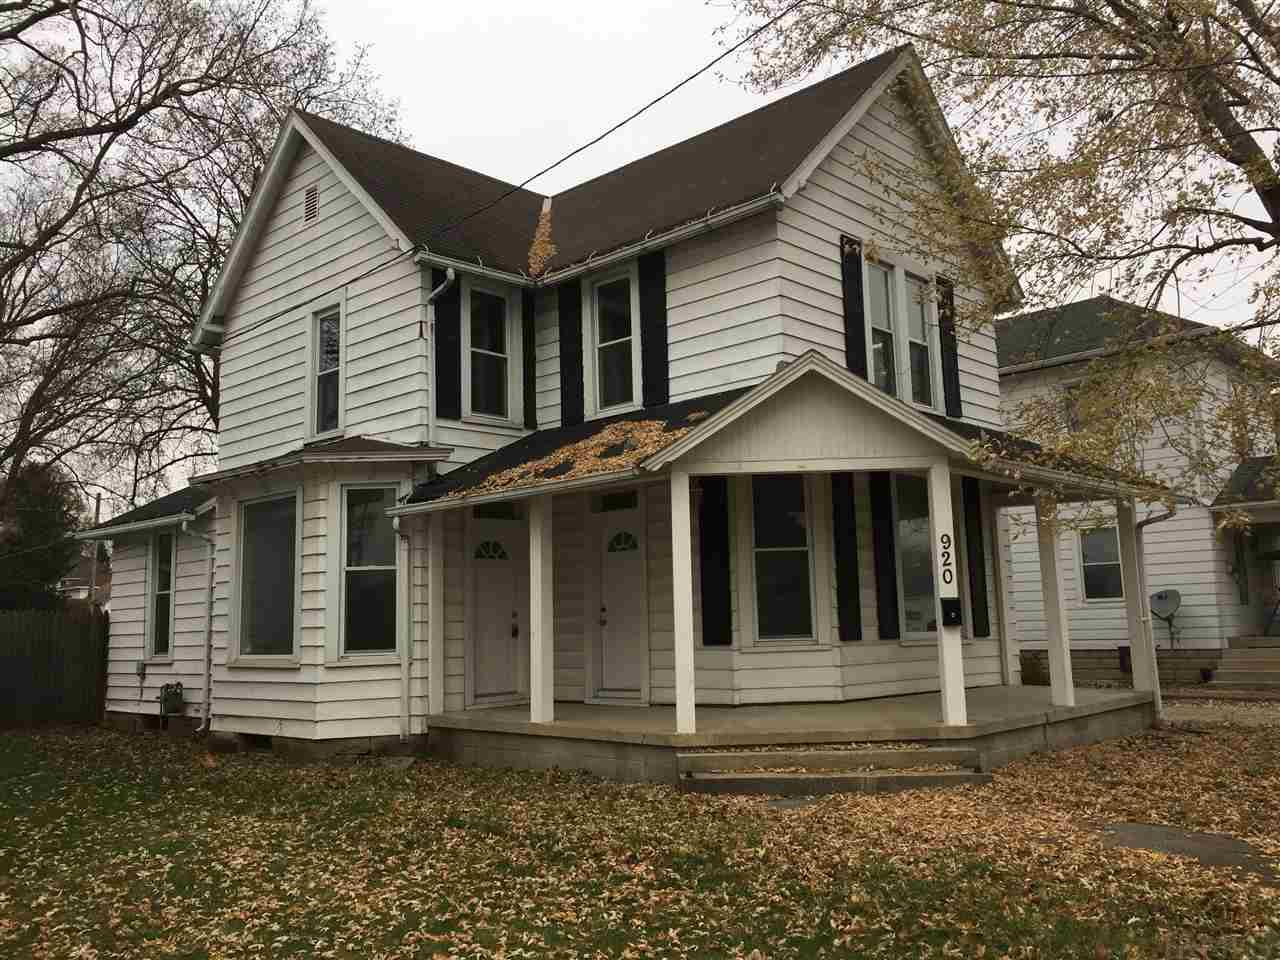 Come see this wonderful 4 bedroom home in Huntington.  Recently updated in 2017. Conveniently located and features lots of charm and charachter, from the covered wrap around front porch and the privacy fenced yard you will love the care and updates that have been put into this home..... Inside you will find many recent updates and a master on the main level...